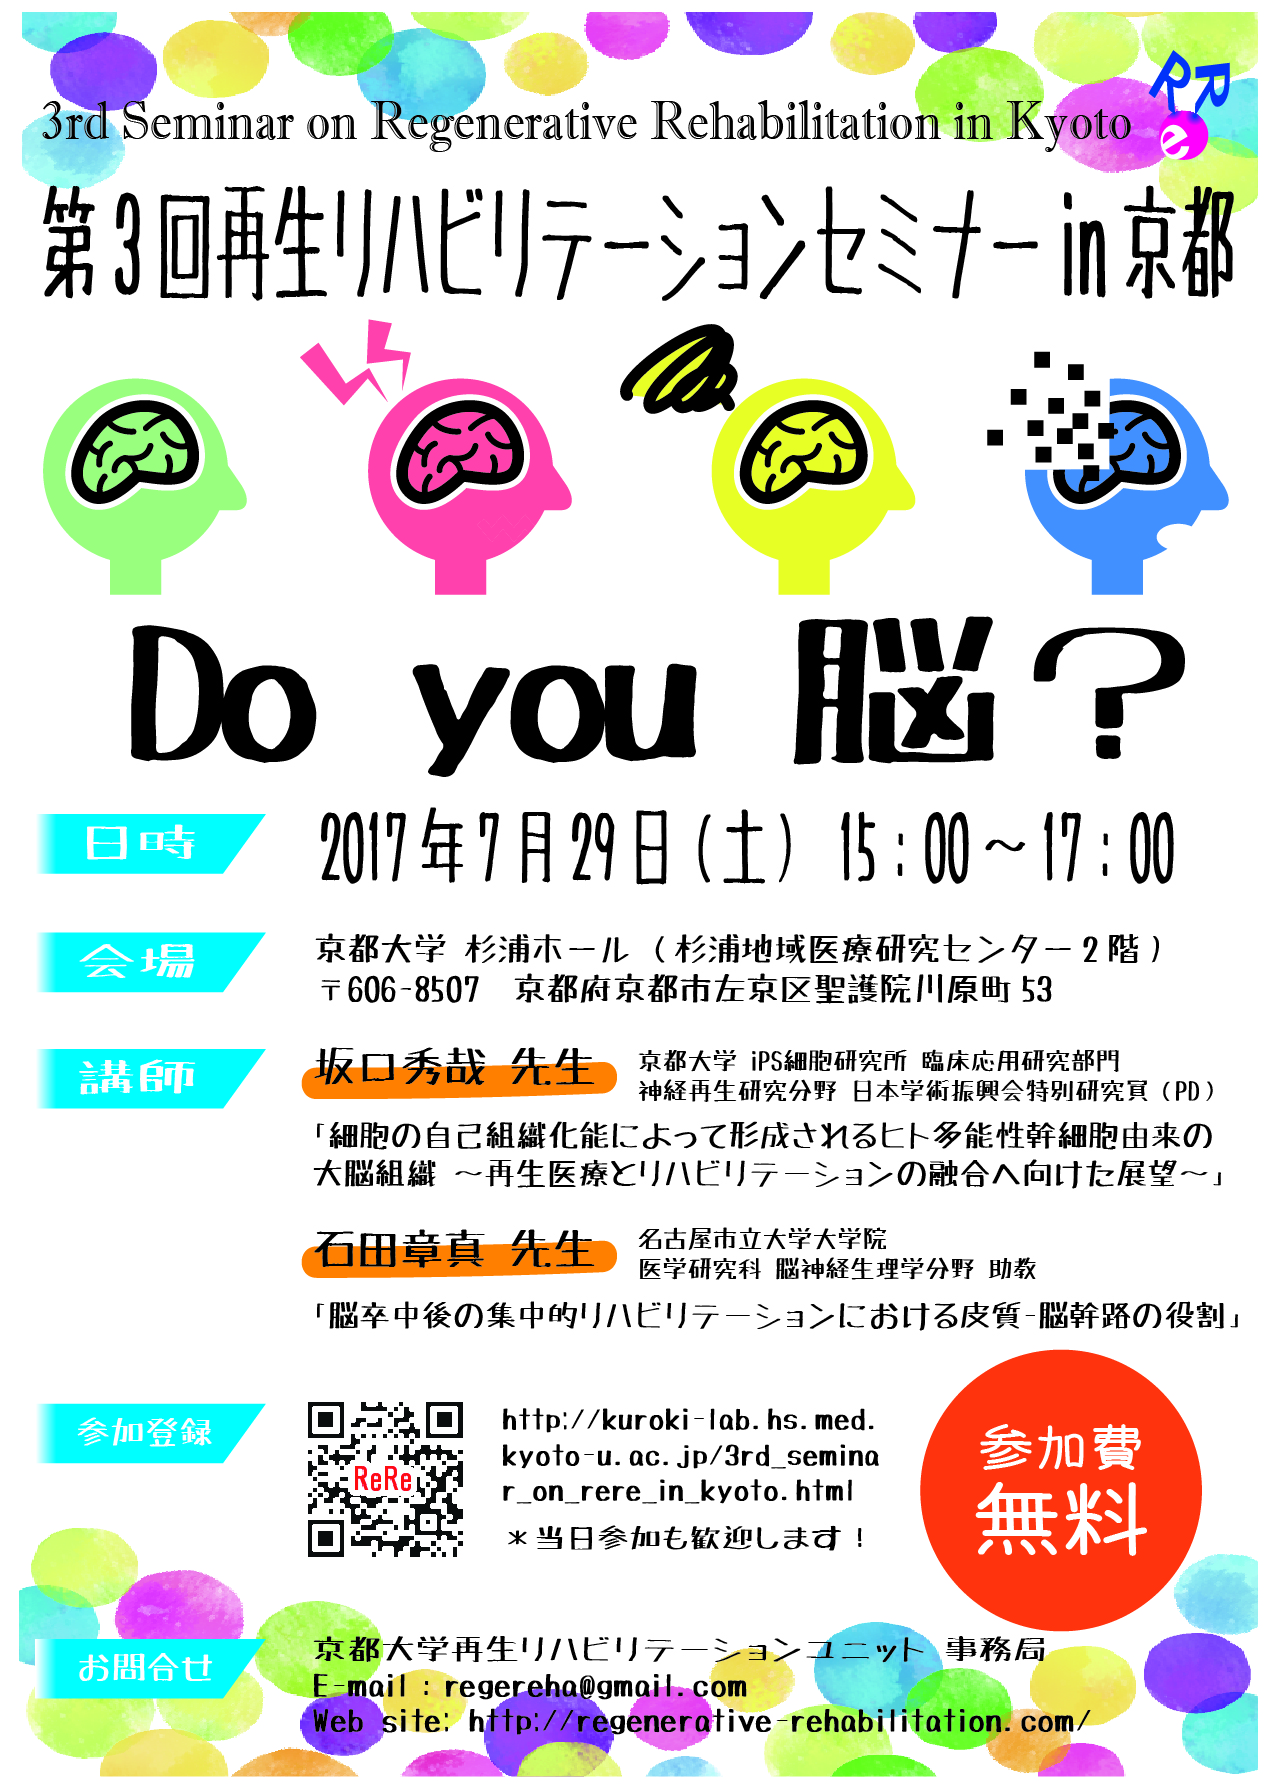 3rd poster-Seminar on Regenerative Rehabilitation in Kyoto